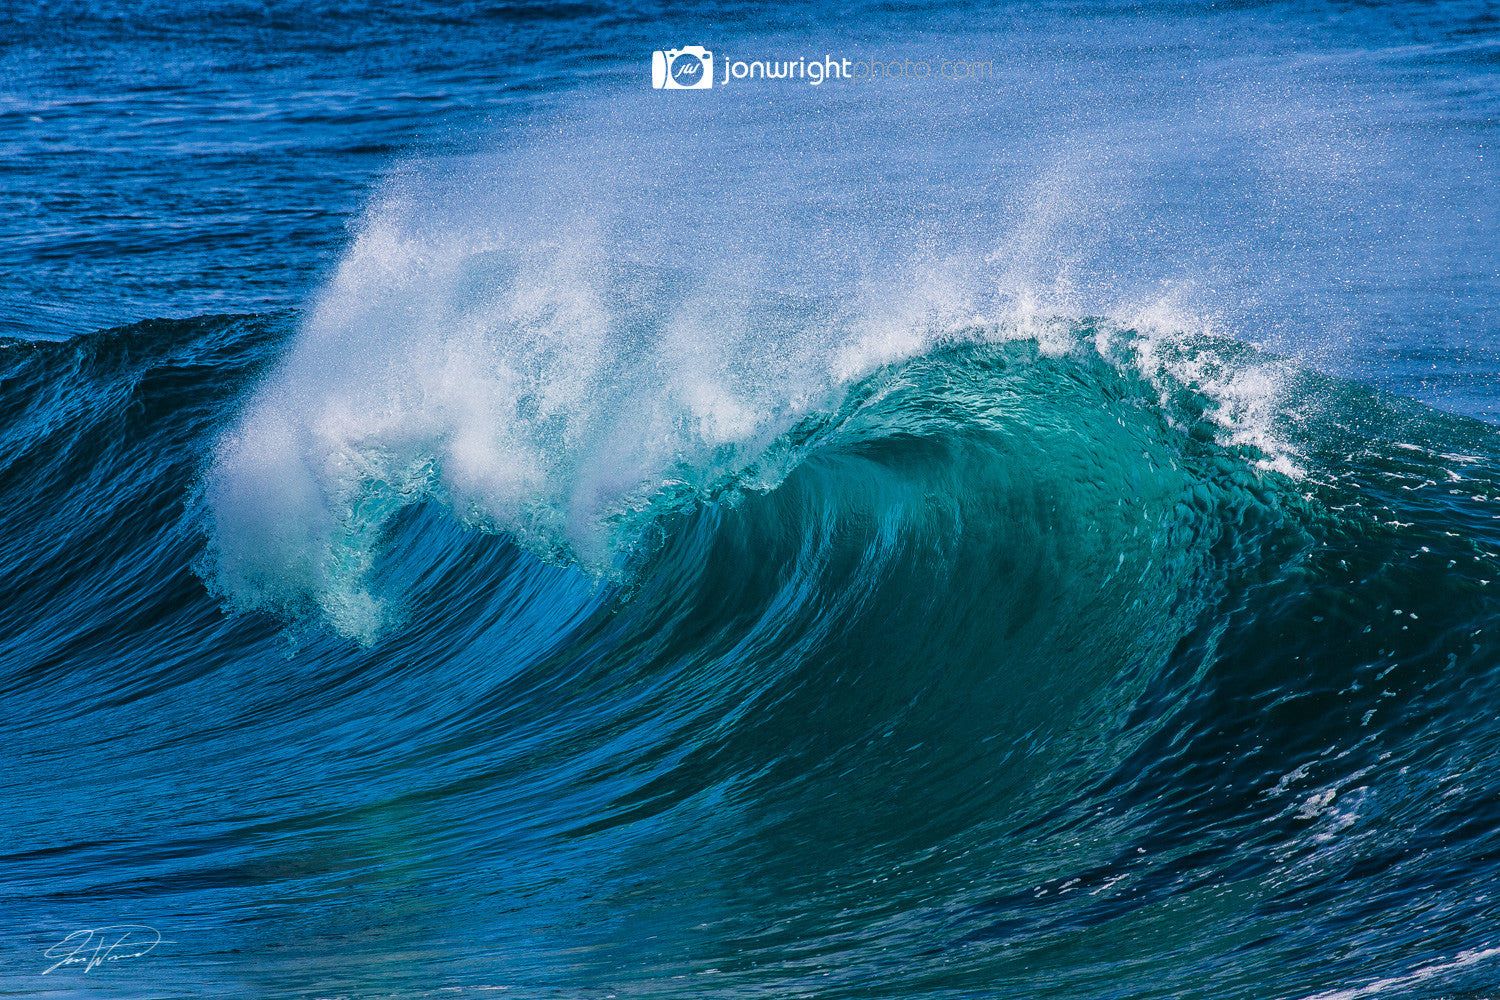 Gold Coast Wave Photography and artwork